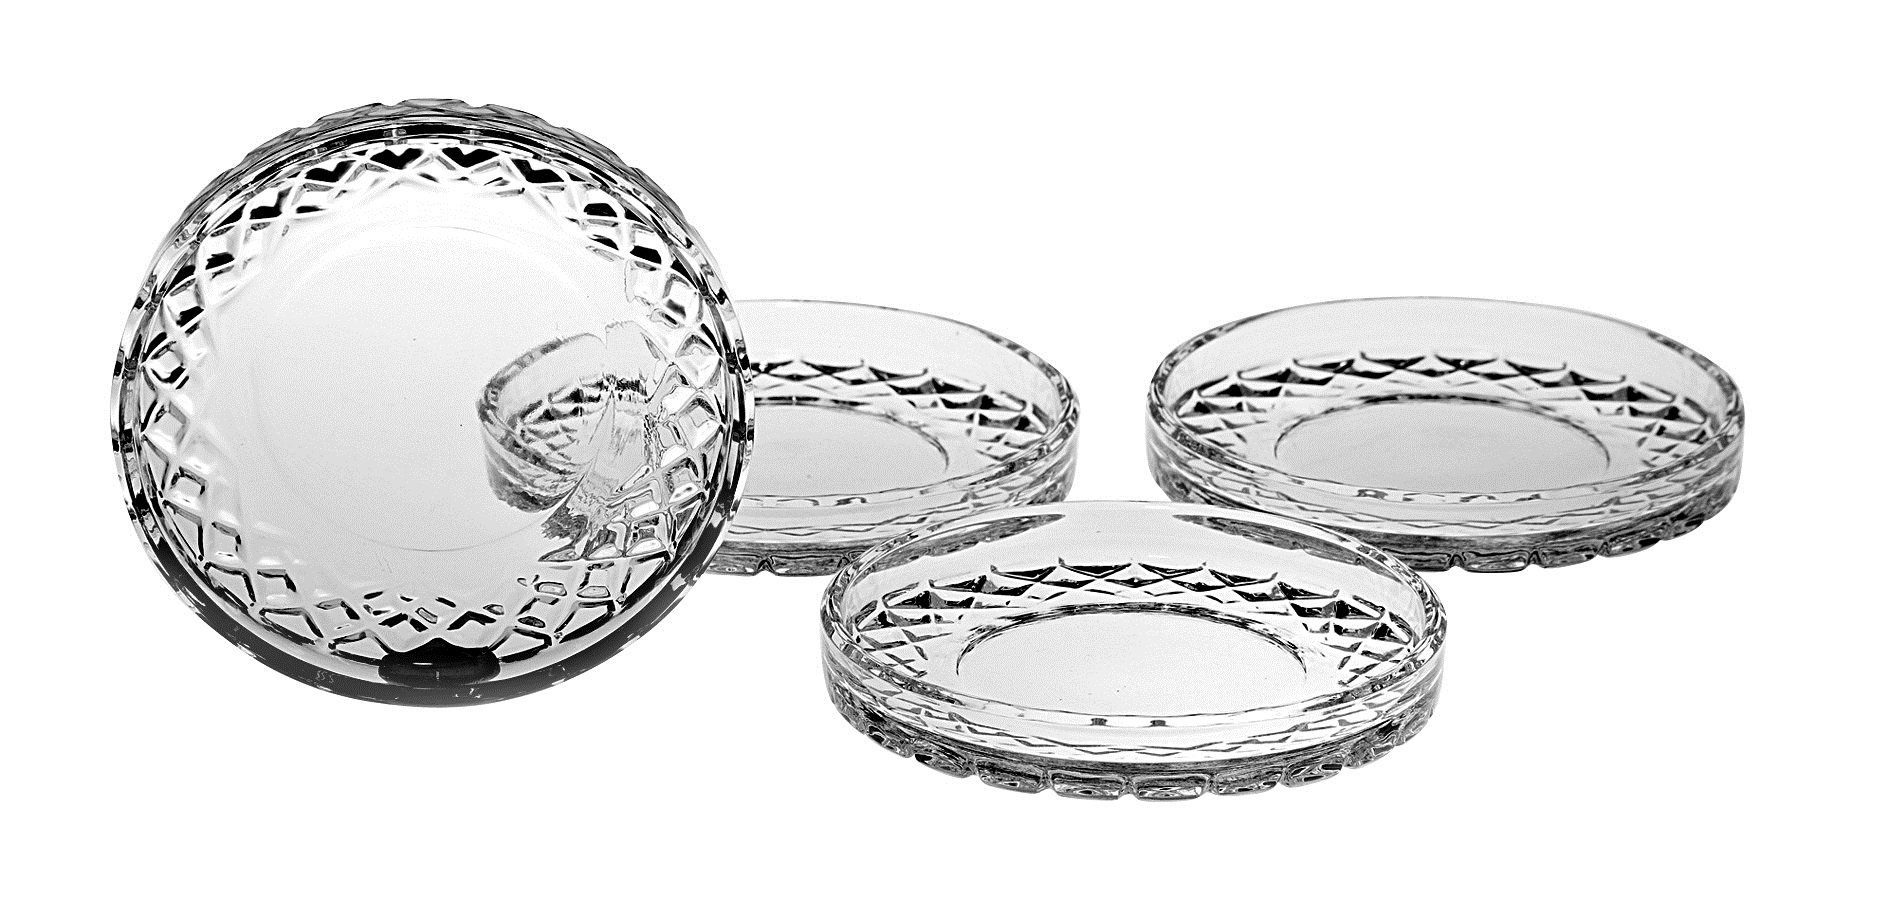 Barski European Crafted Cut Crystal Coasters, 4.25''Diameter, Superb Quality, Manufactured in Europe, Set of 4 by Barski